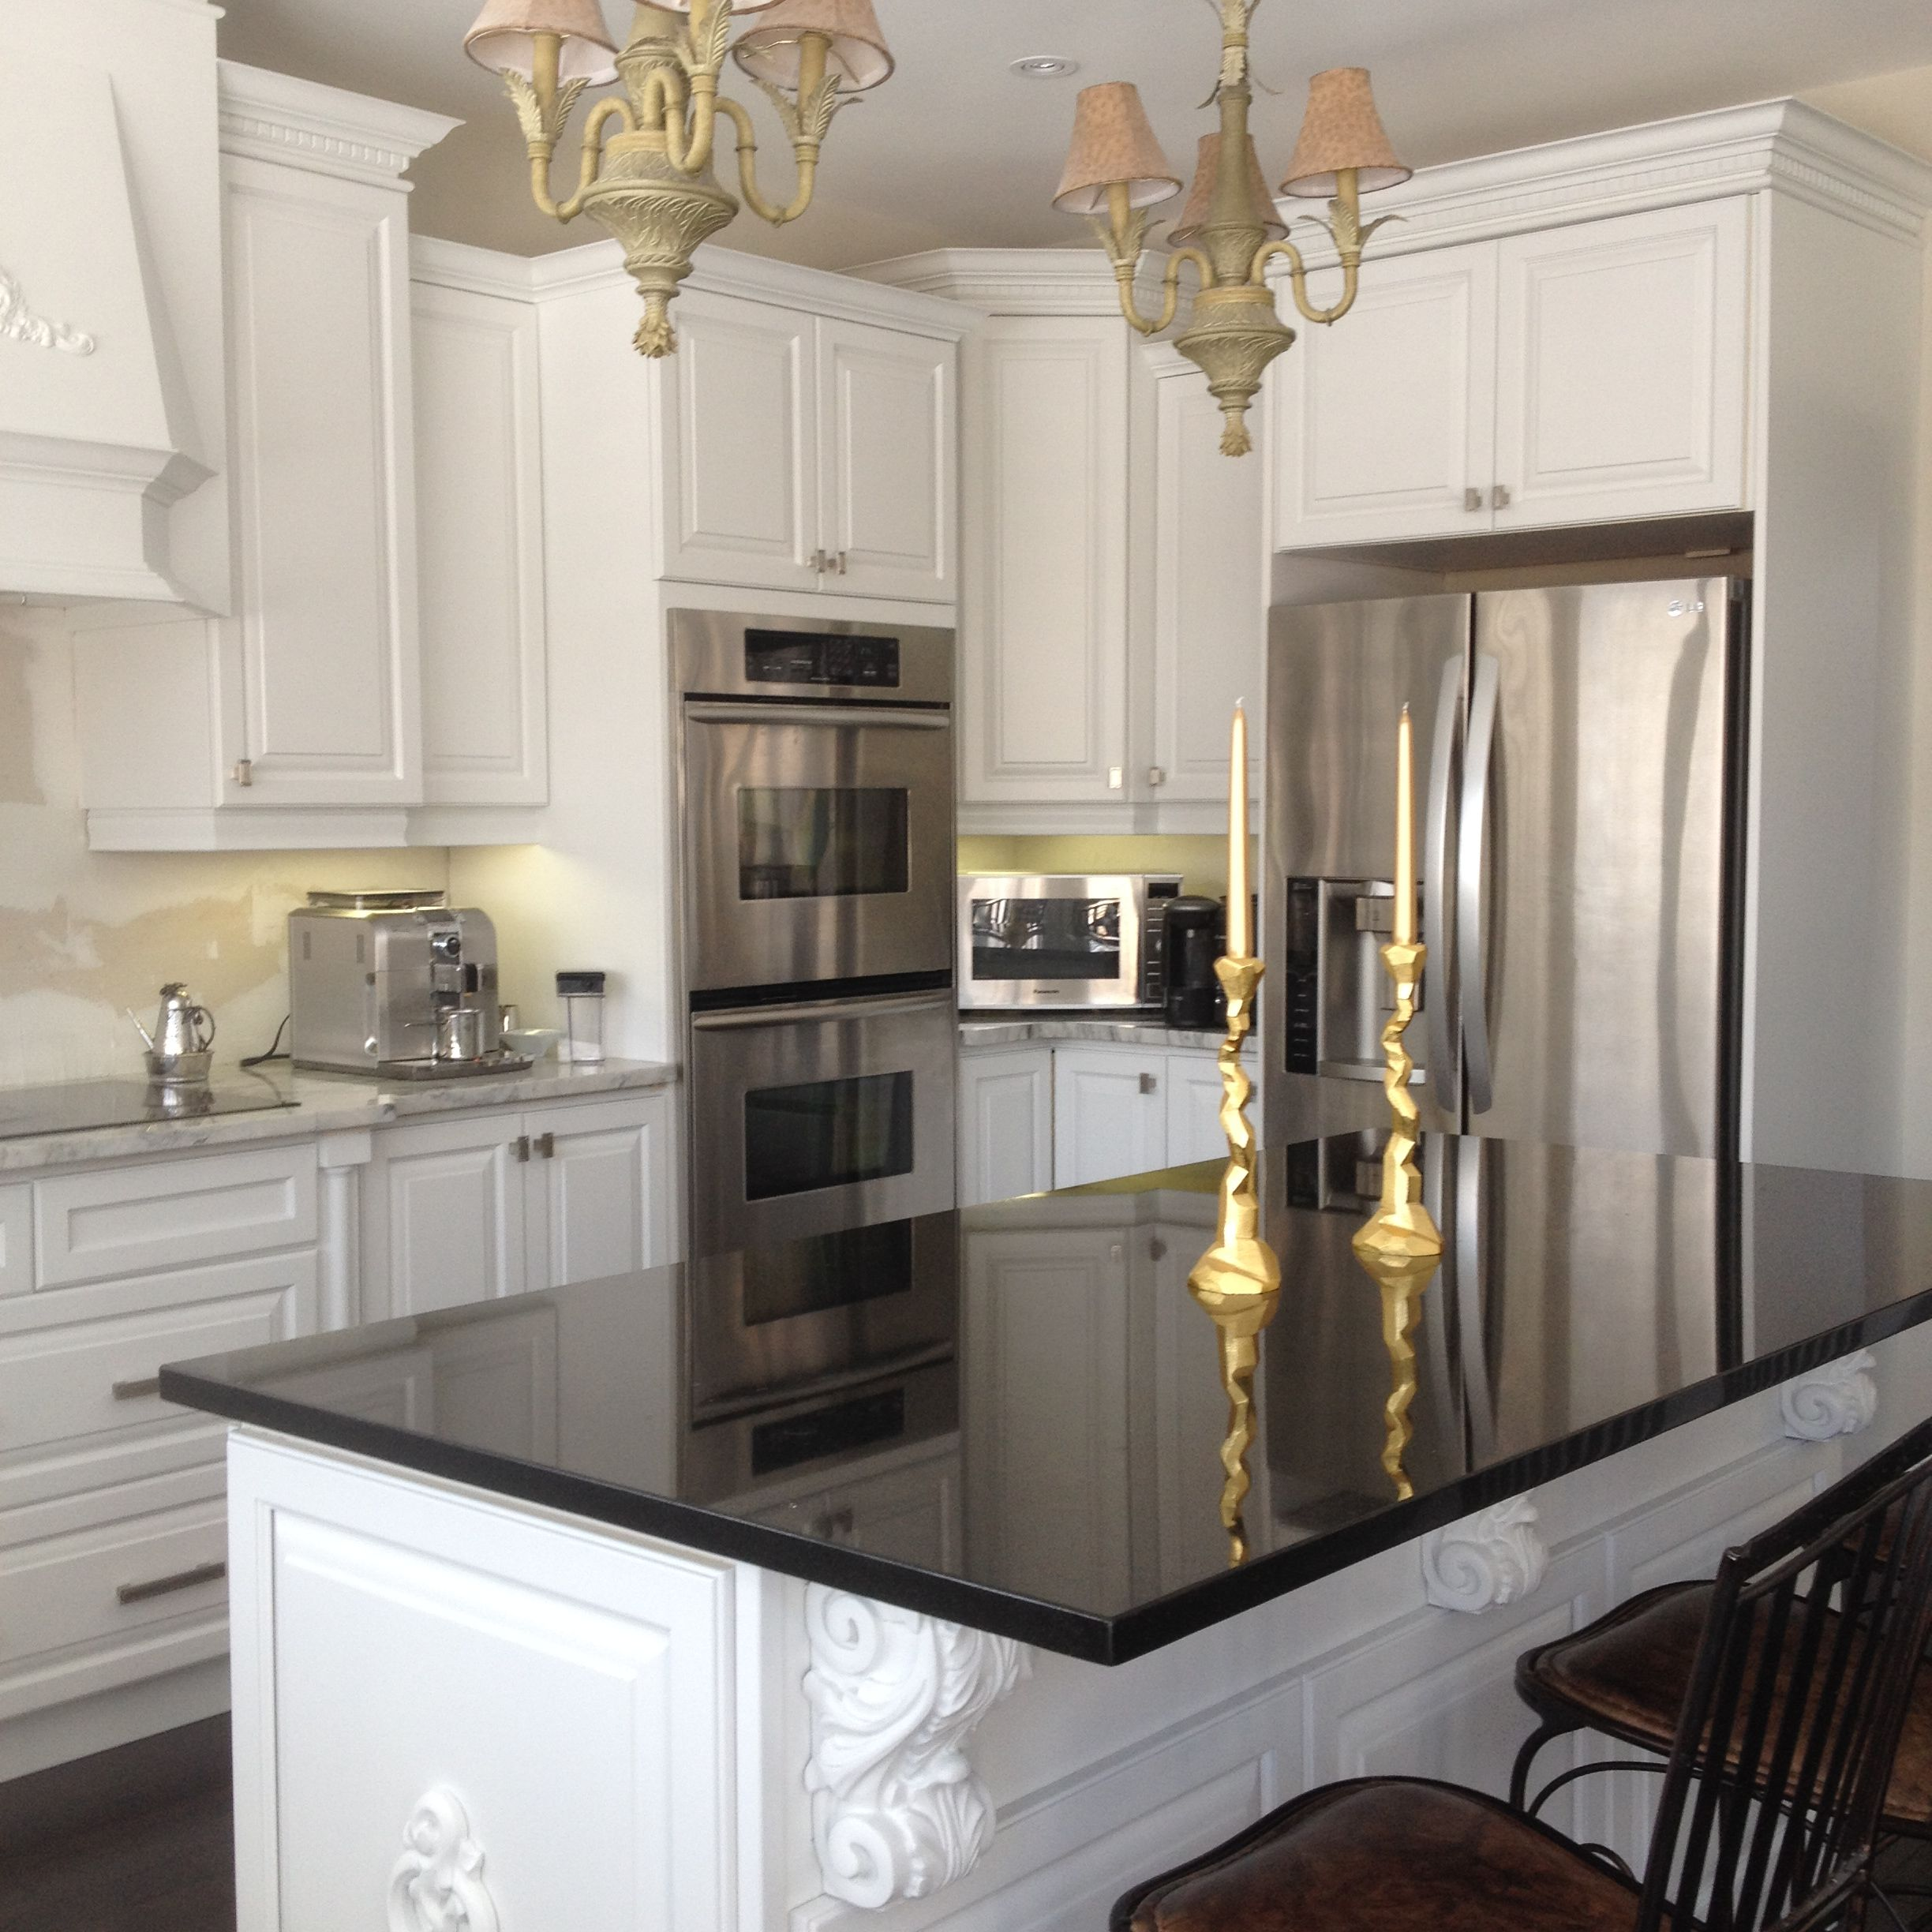 Spray Painted Kitchen Cabinets Done In Sherwin Williams Kem Aqua